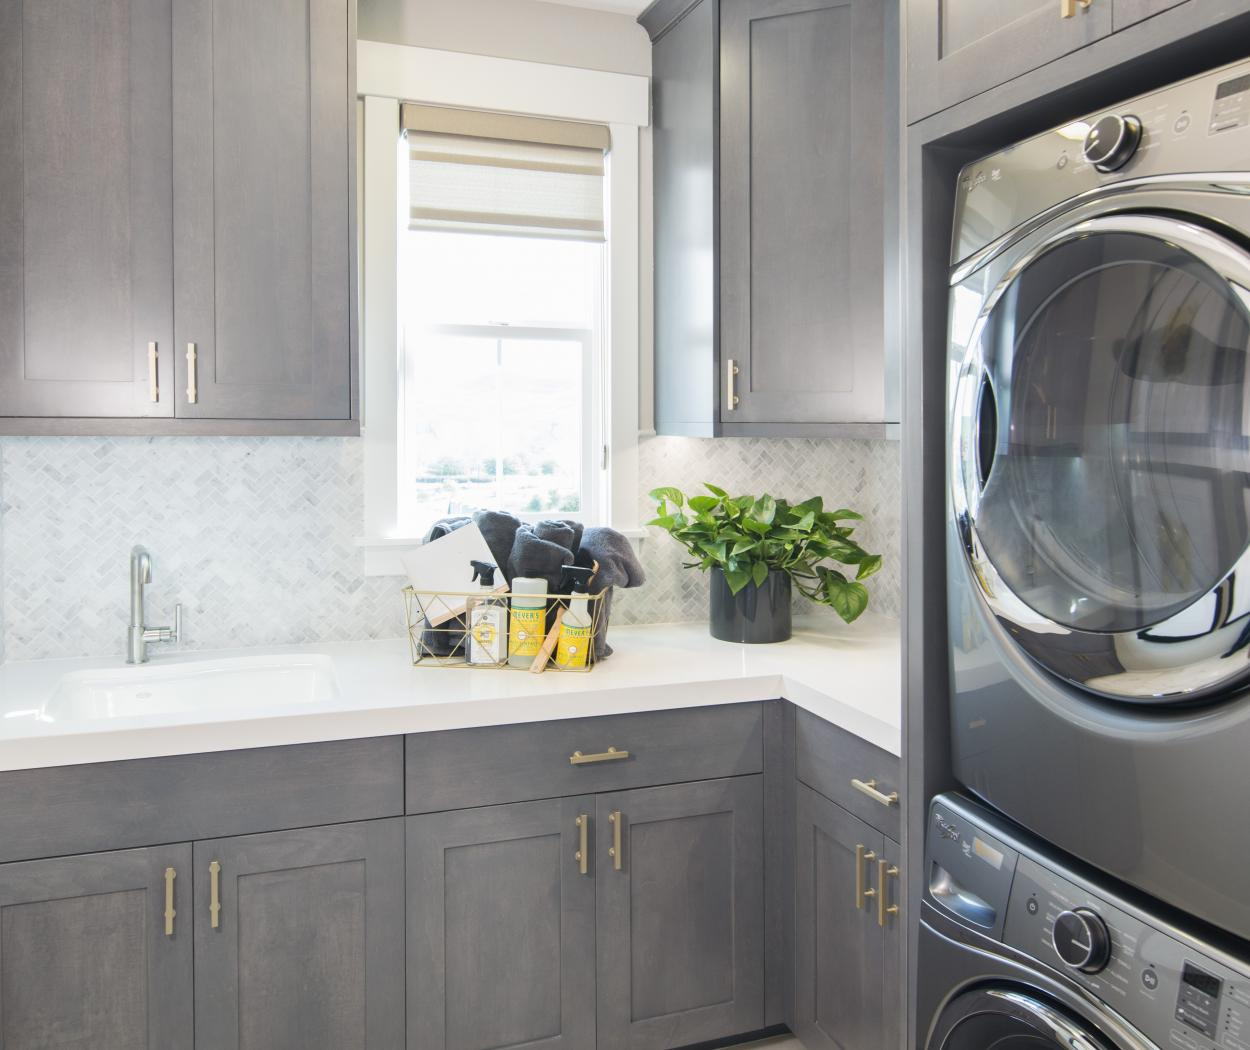 Beautiful Laundry Room, Shaker Style with a White Counter Top, Gold Pulls and Dark Silver Washer - Dryer